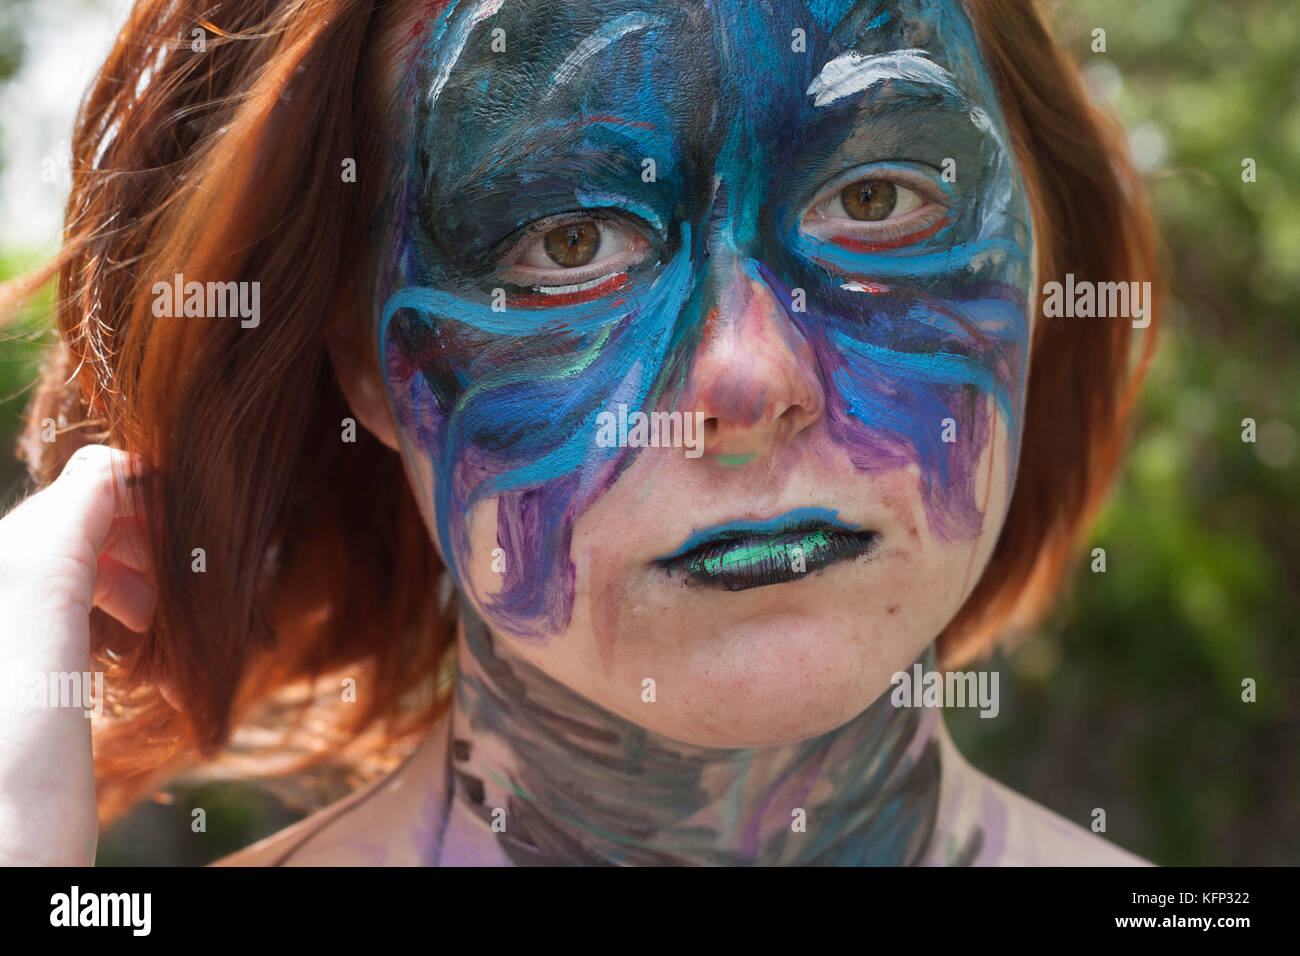 Girl with a painted face - Stock Image